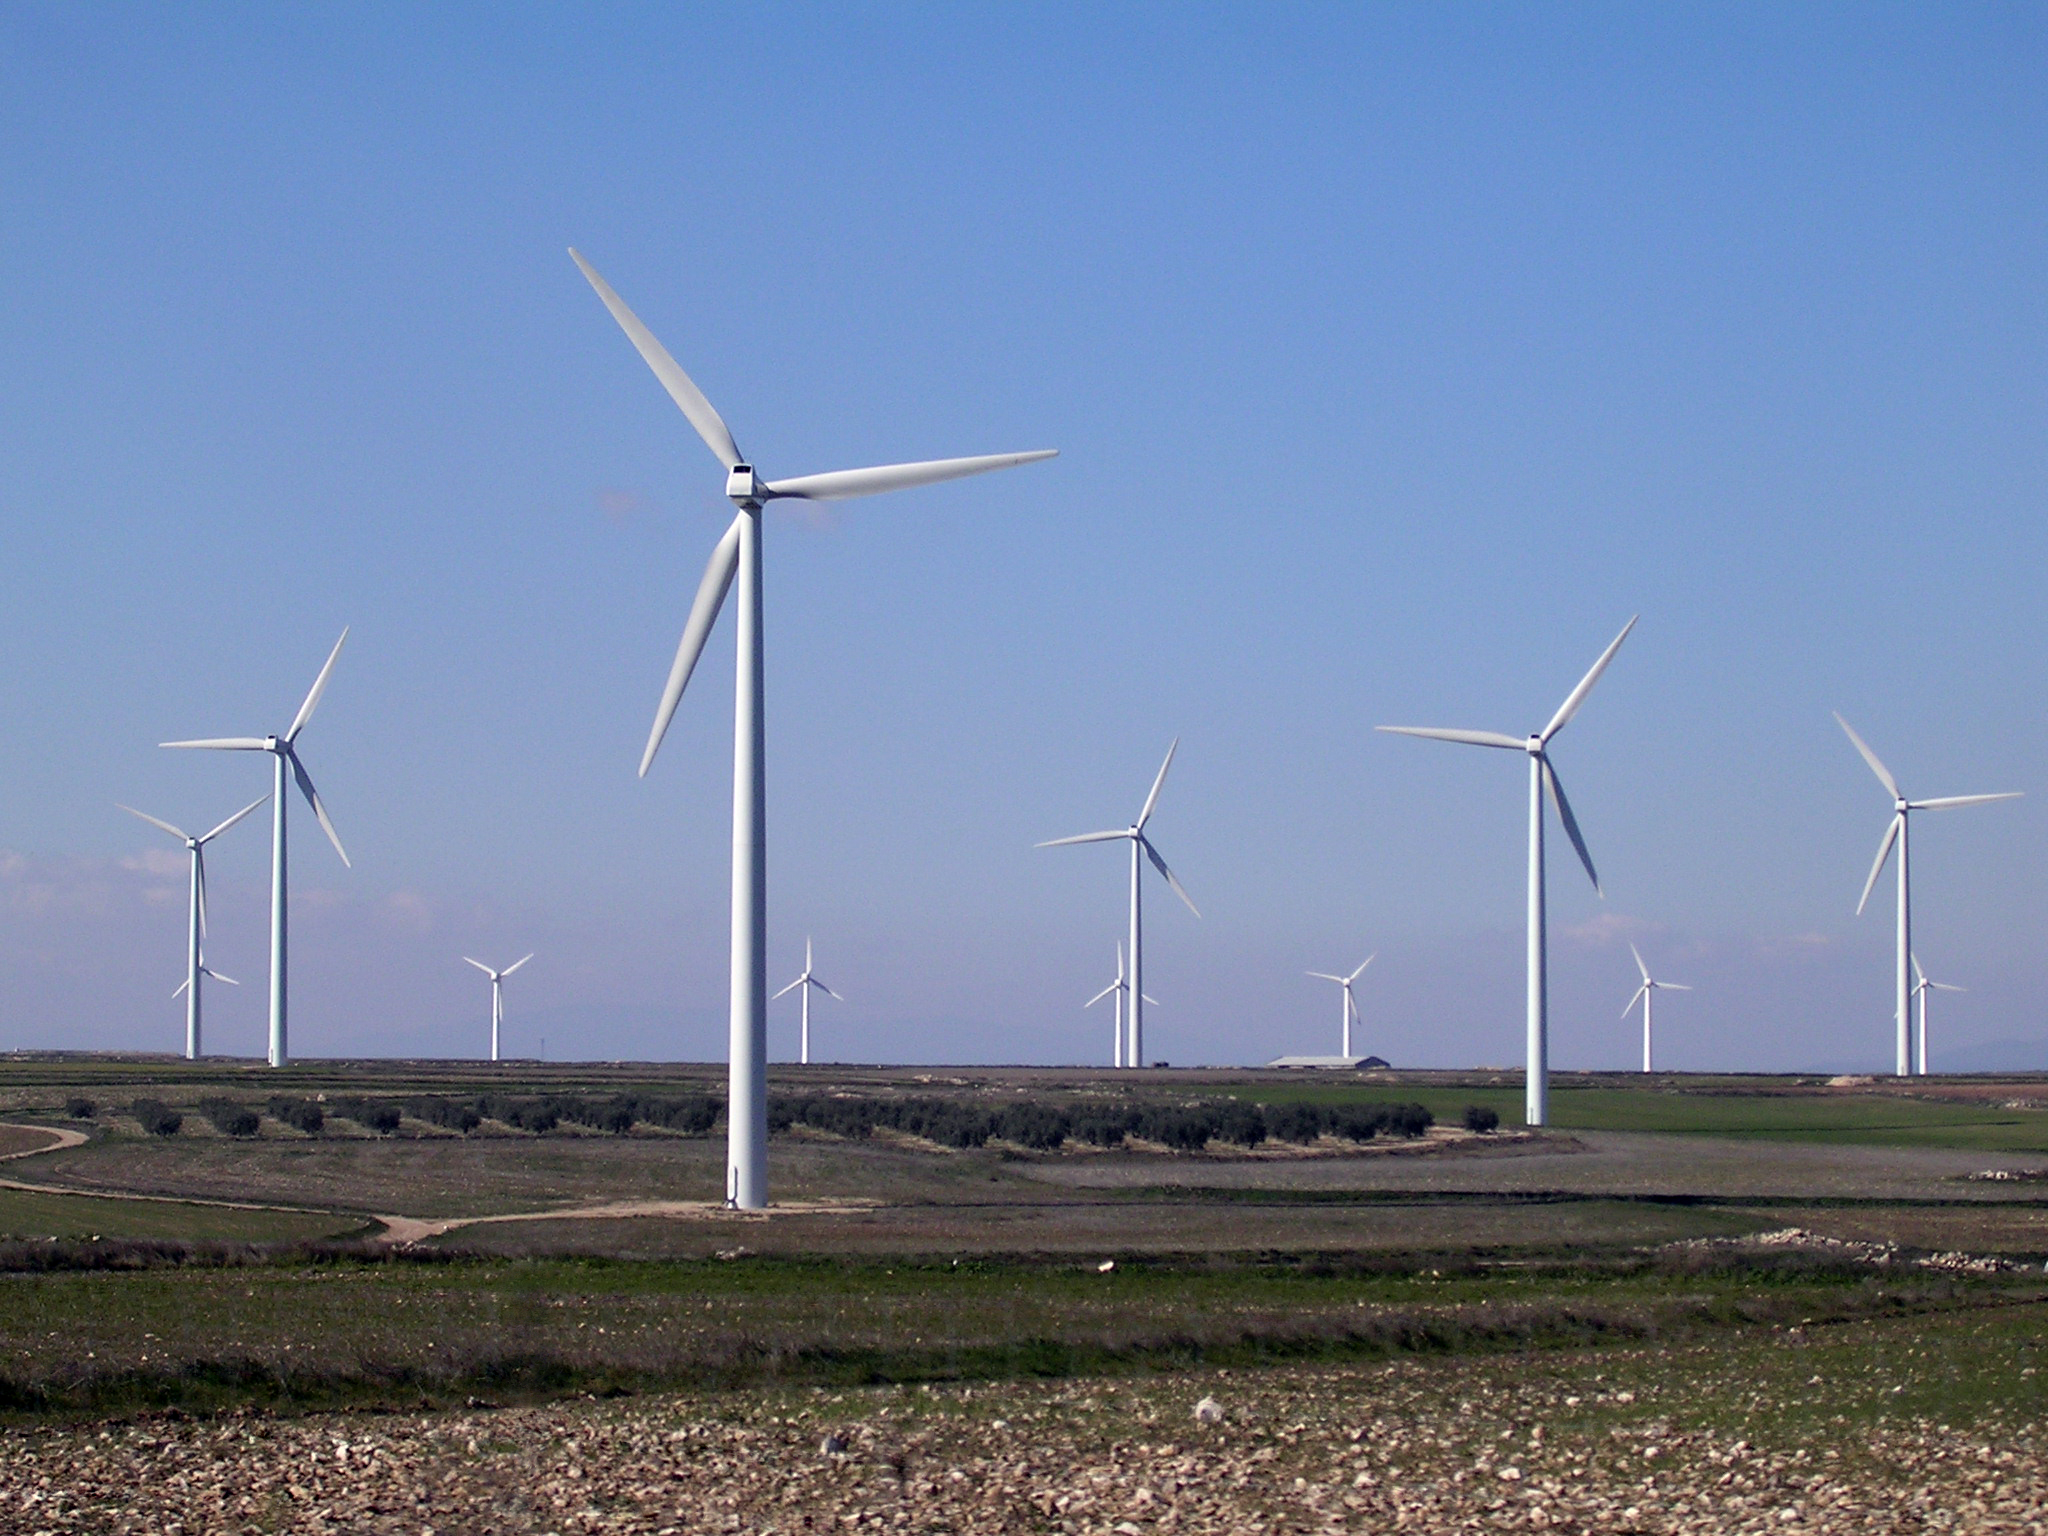 A wind farm of about a dozen three-bladed white wind turbines.